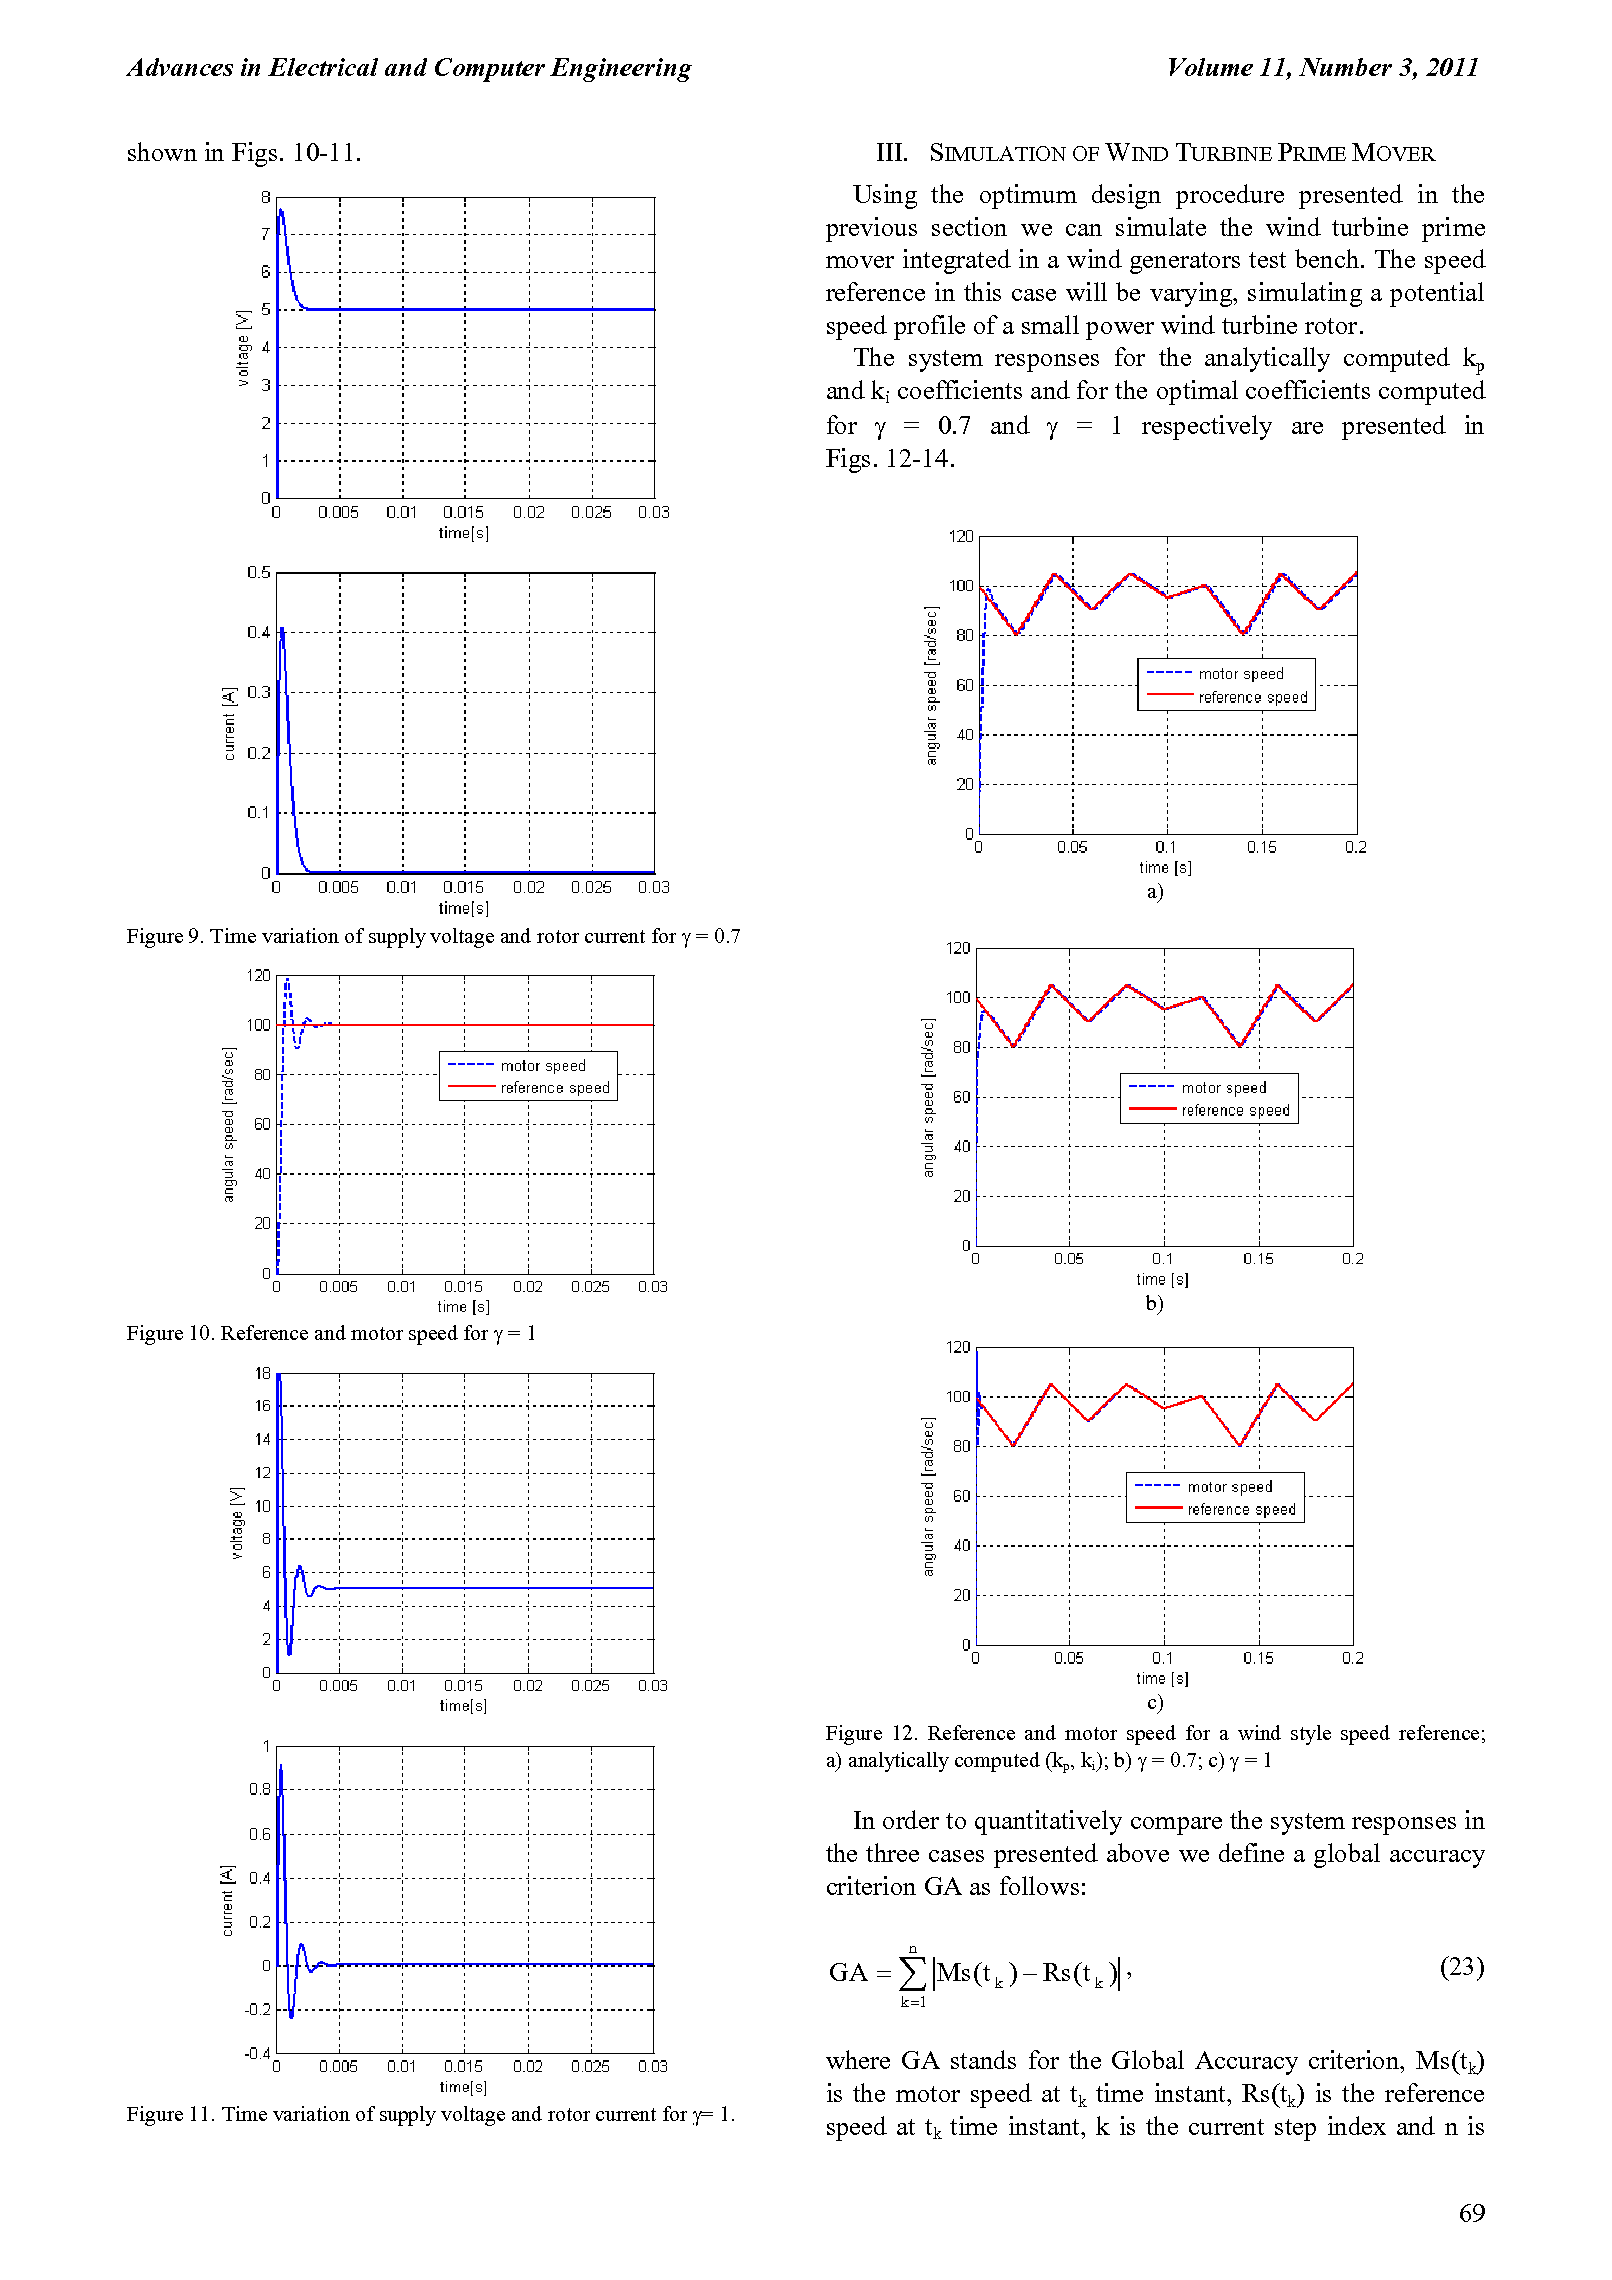 PDF Quickview for paper with DOI:10.4316/AECE.2011.03011